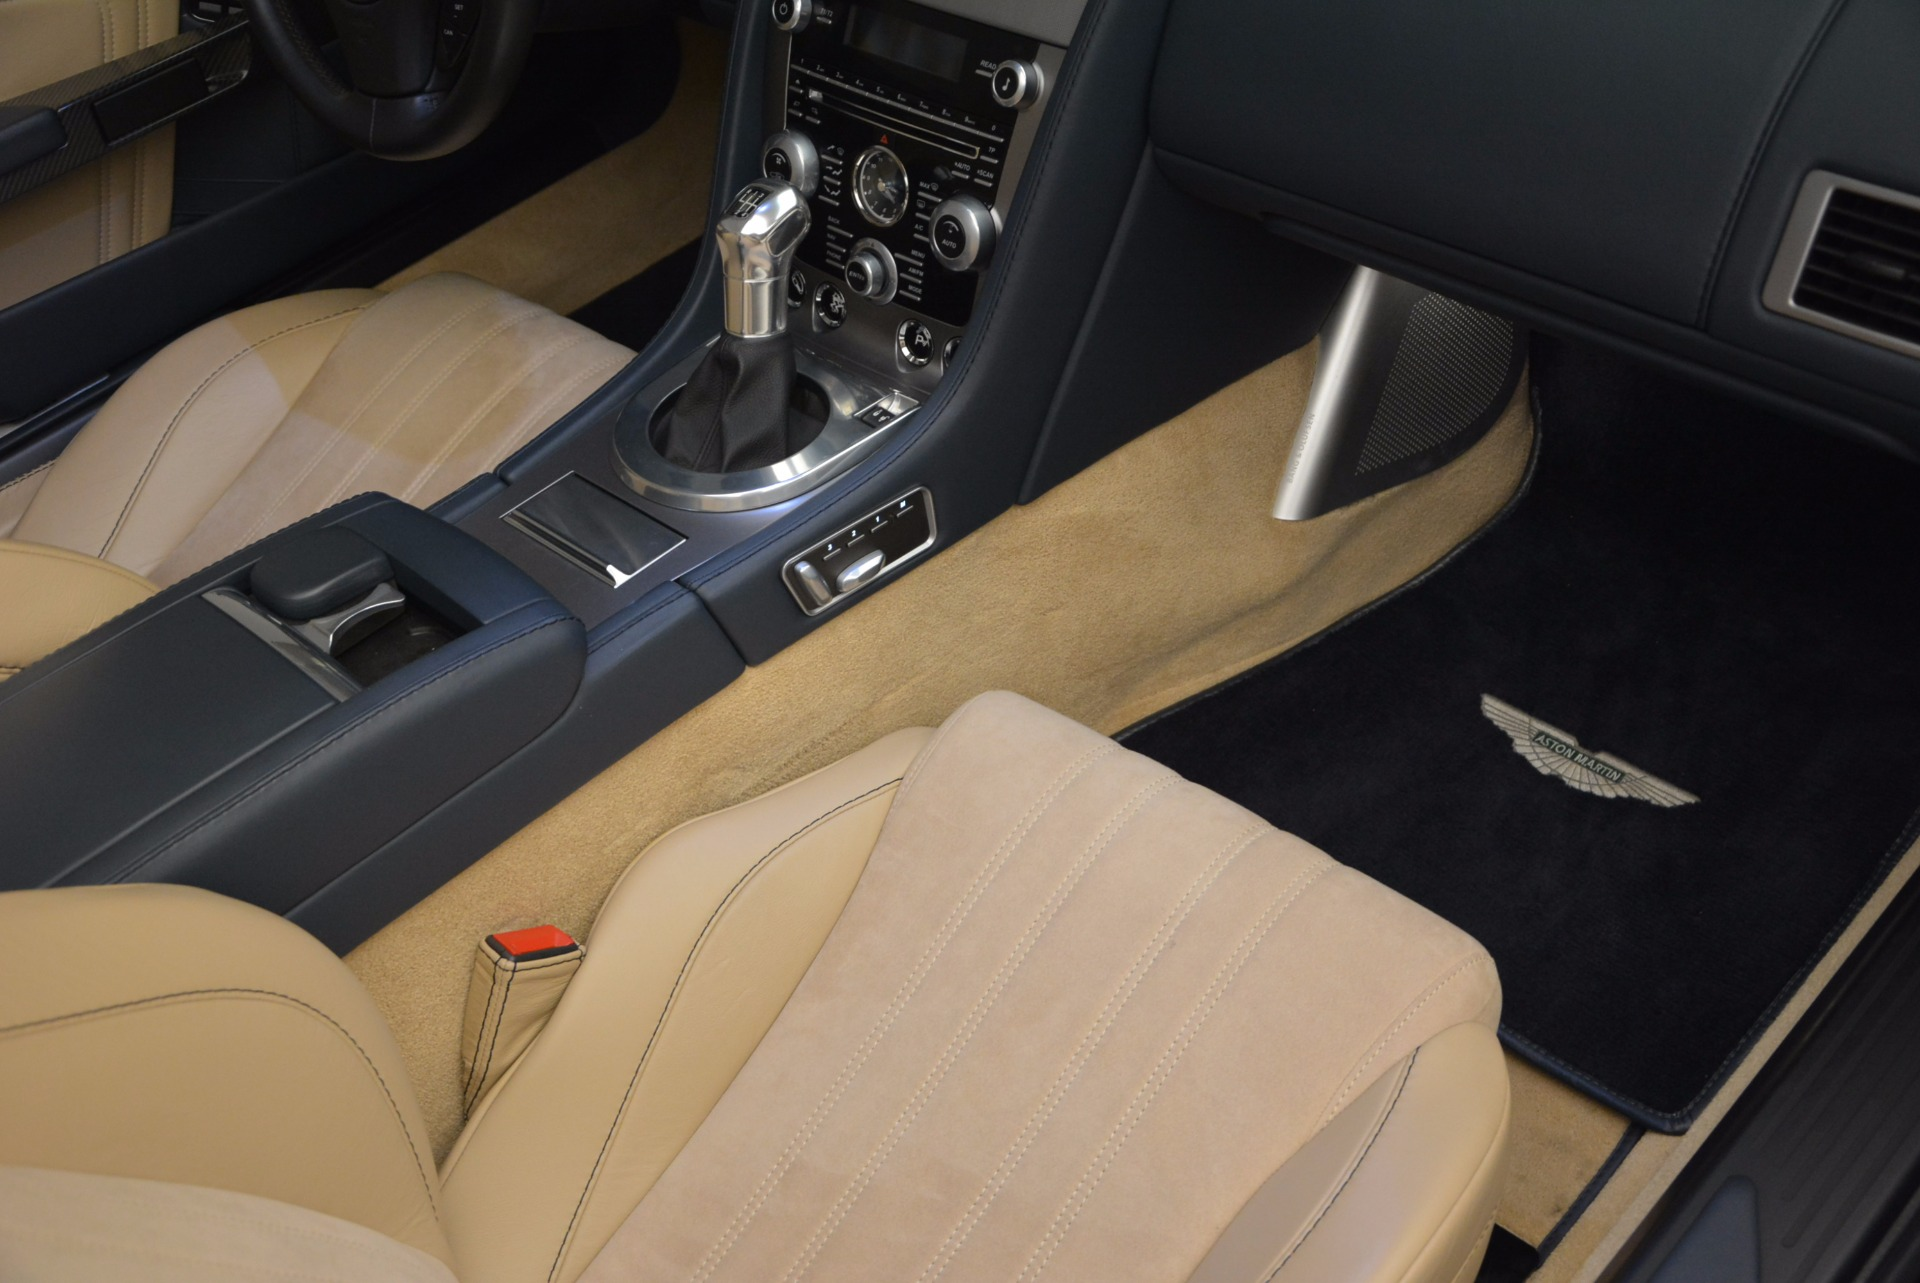 Used 2012 Aston Martin DBS Volante For Sale In Westport, CT 644_p32